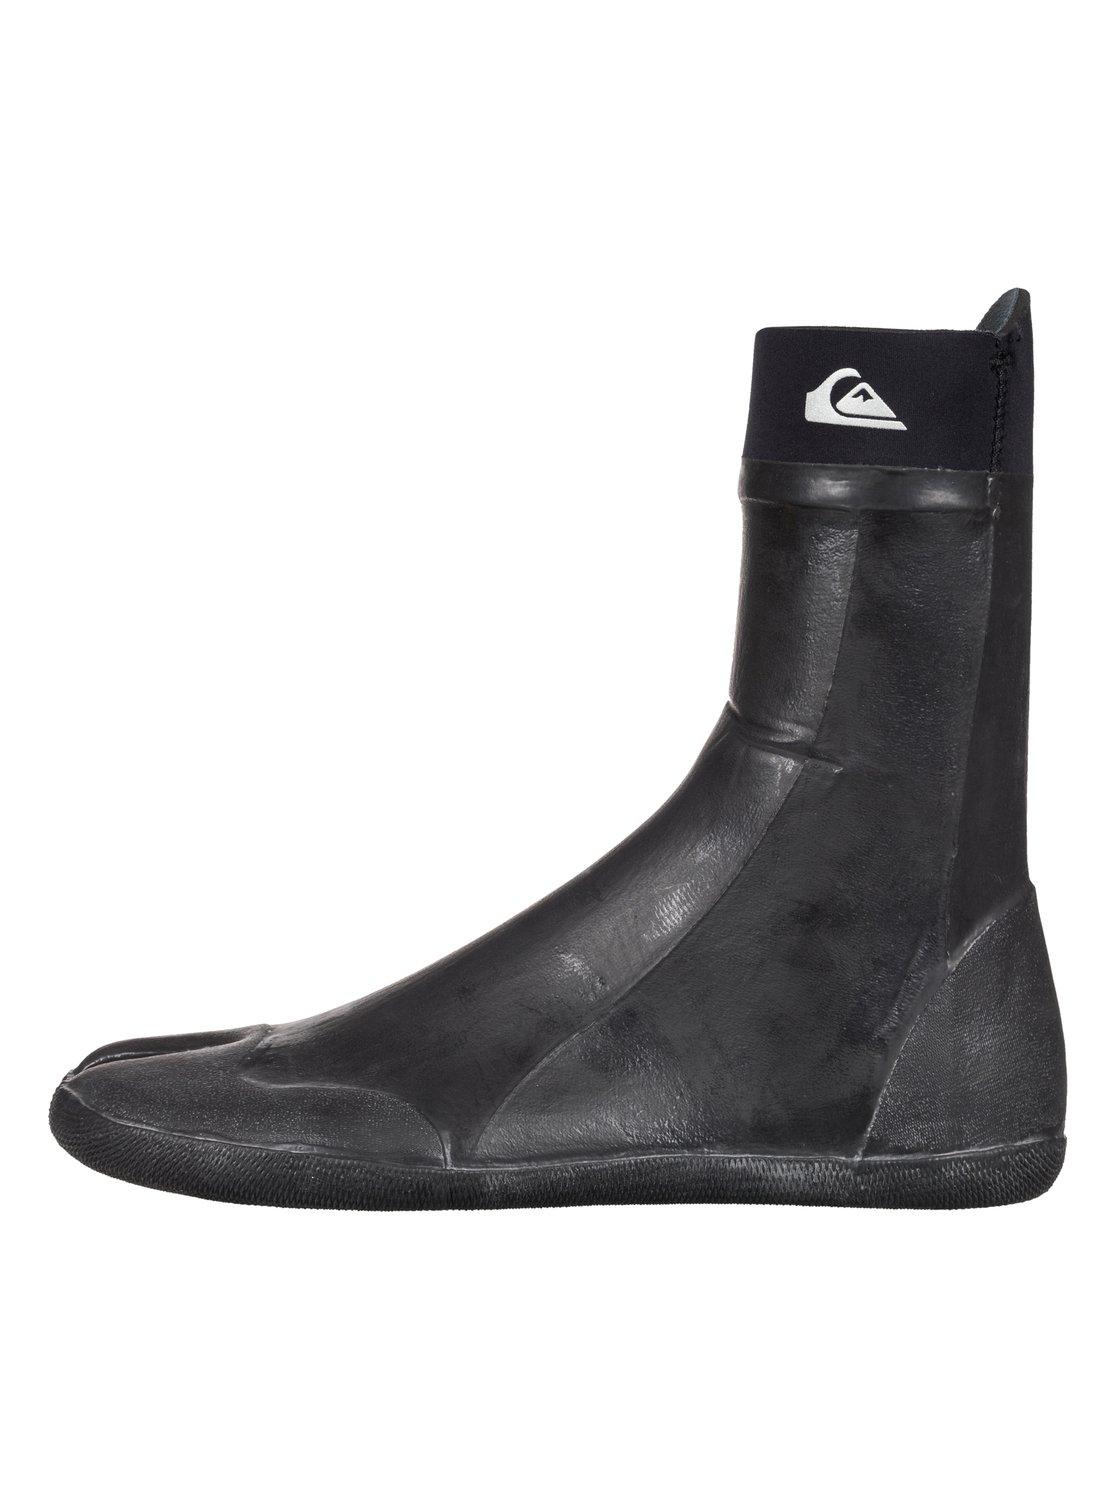 Highline Neogoo 3mm - Split Toe Surf Boots